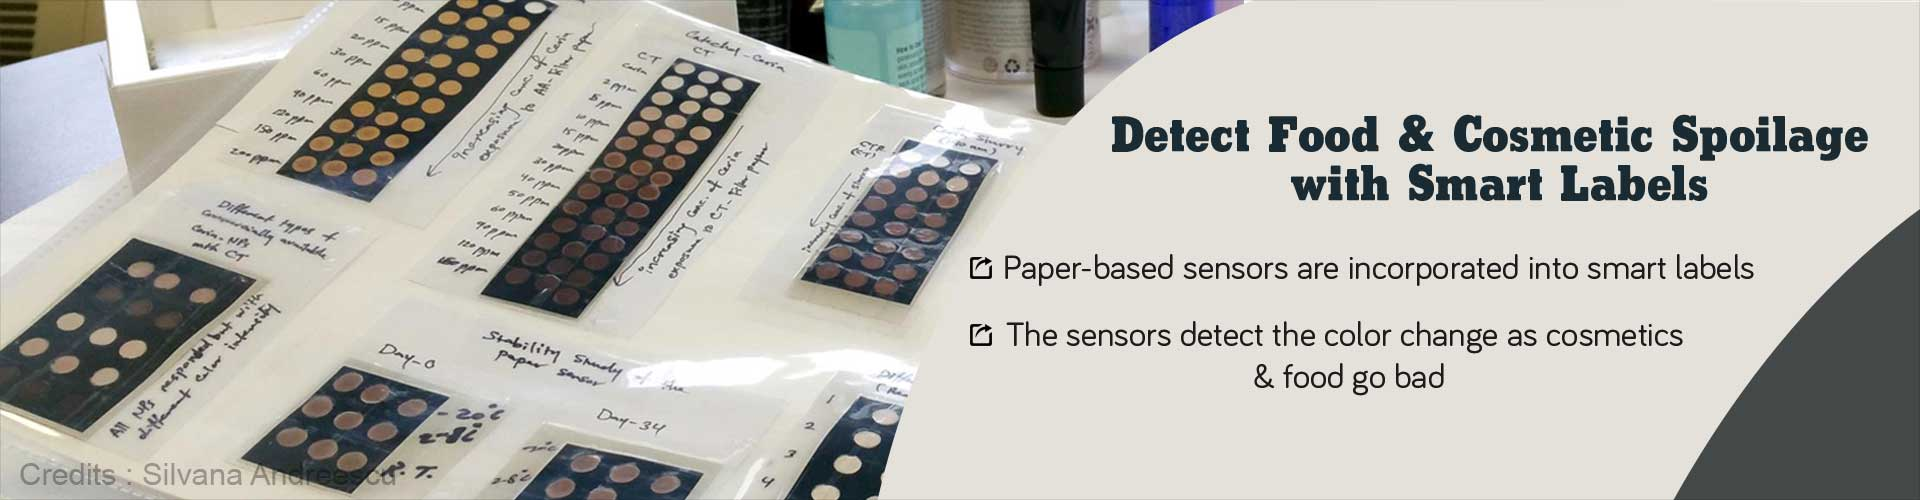 detect food & cosmetic spoilage with smart labels - paper-based sensors are incorporated into mart labels - the sensors detect the color change as cosmetics and food go bad